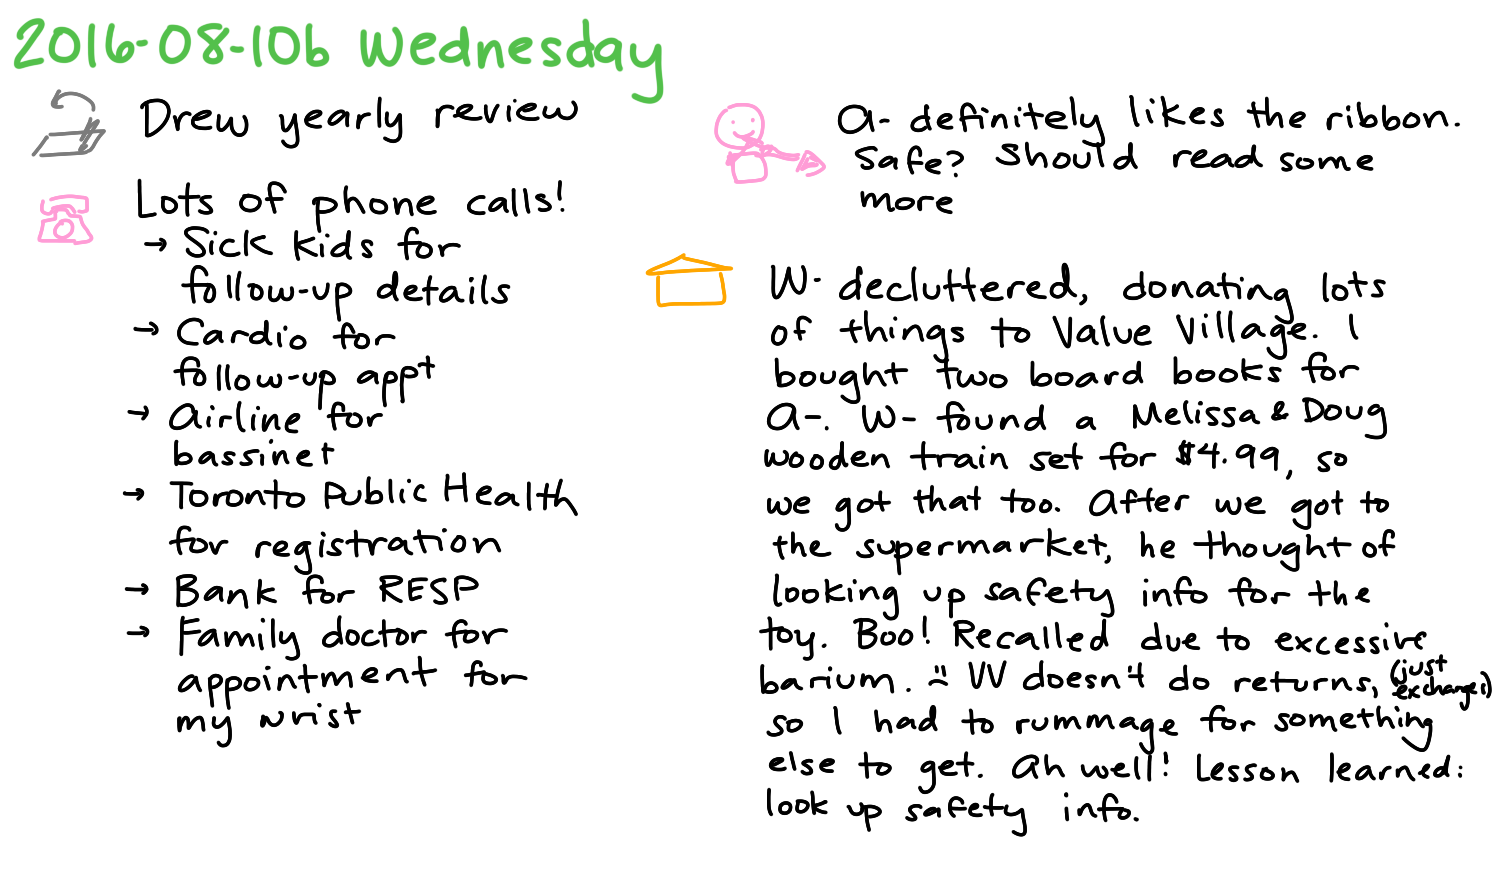 2016-08-10b Wednesday -- index card #journal.png